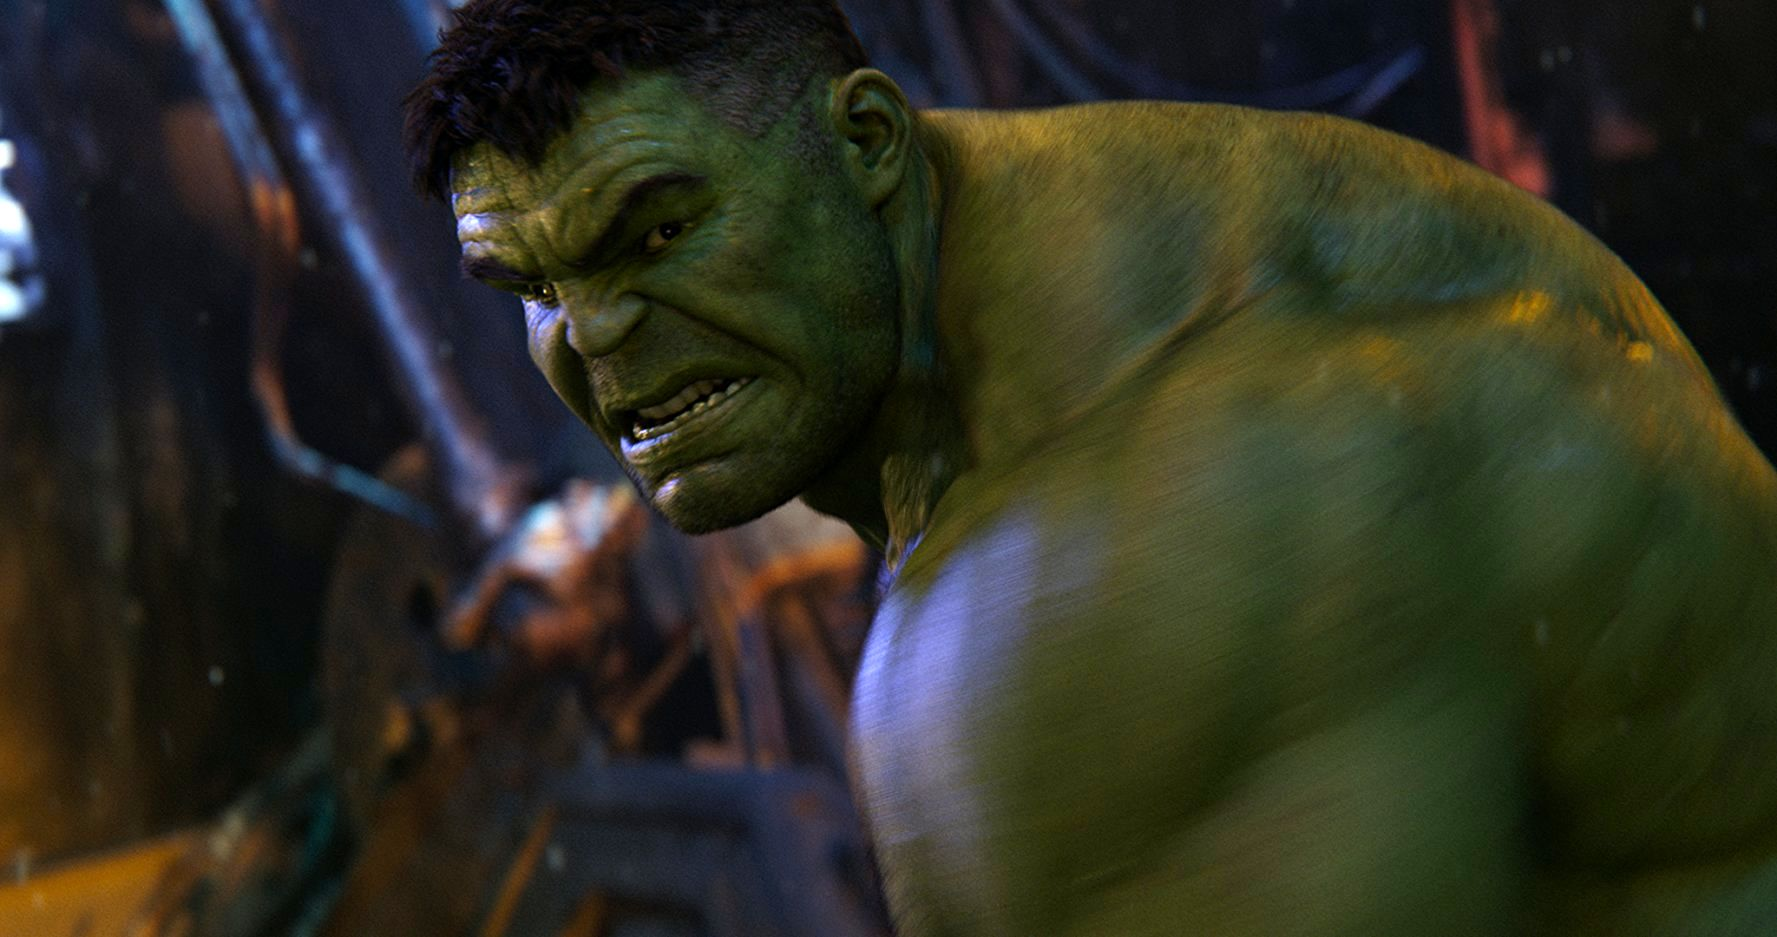 Can the Hulk recover from his injuries in Avengers: Endgame?